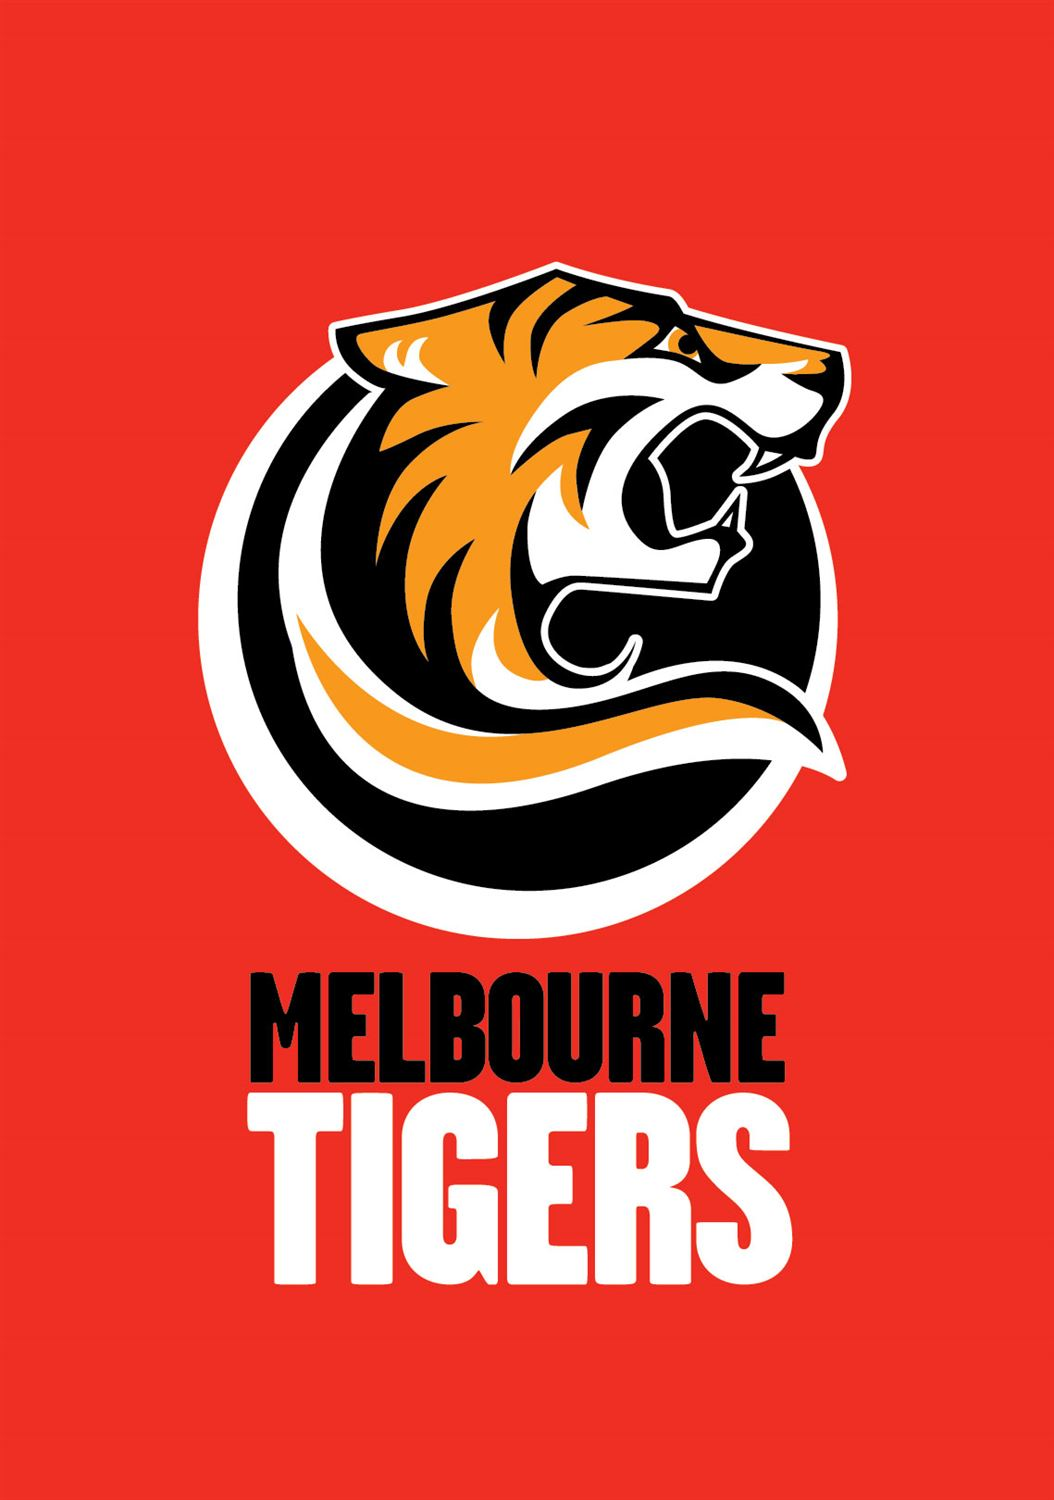 Melbourne Basketball - Melbourne Tigers